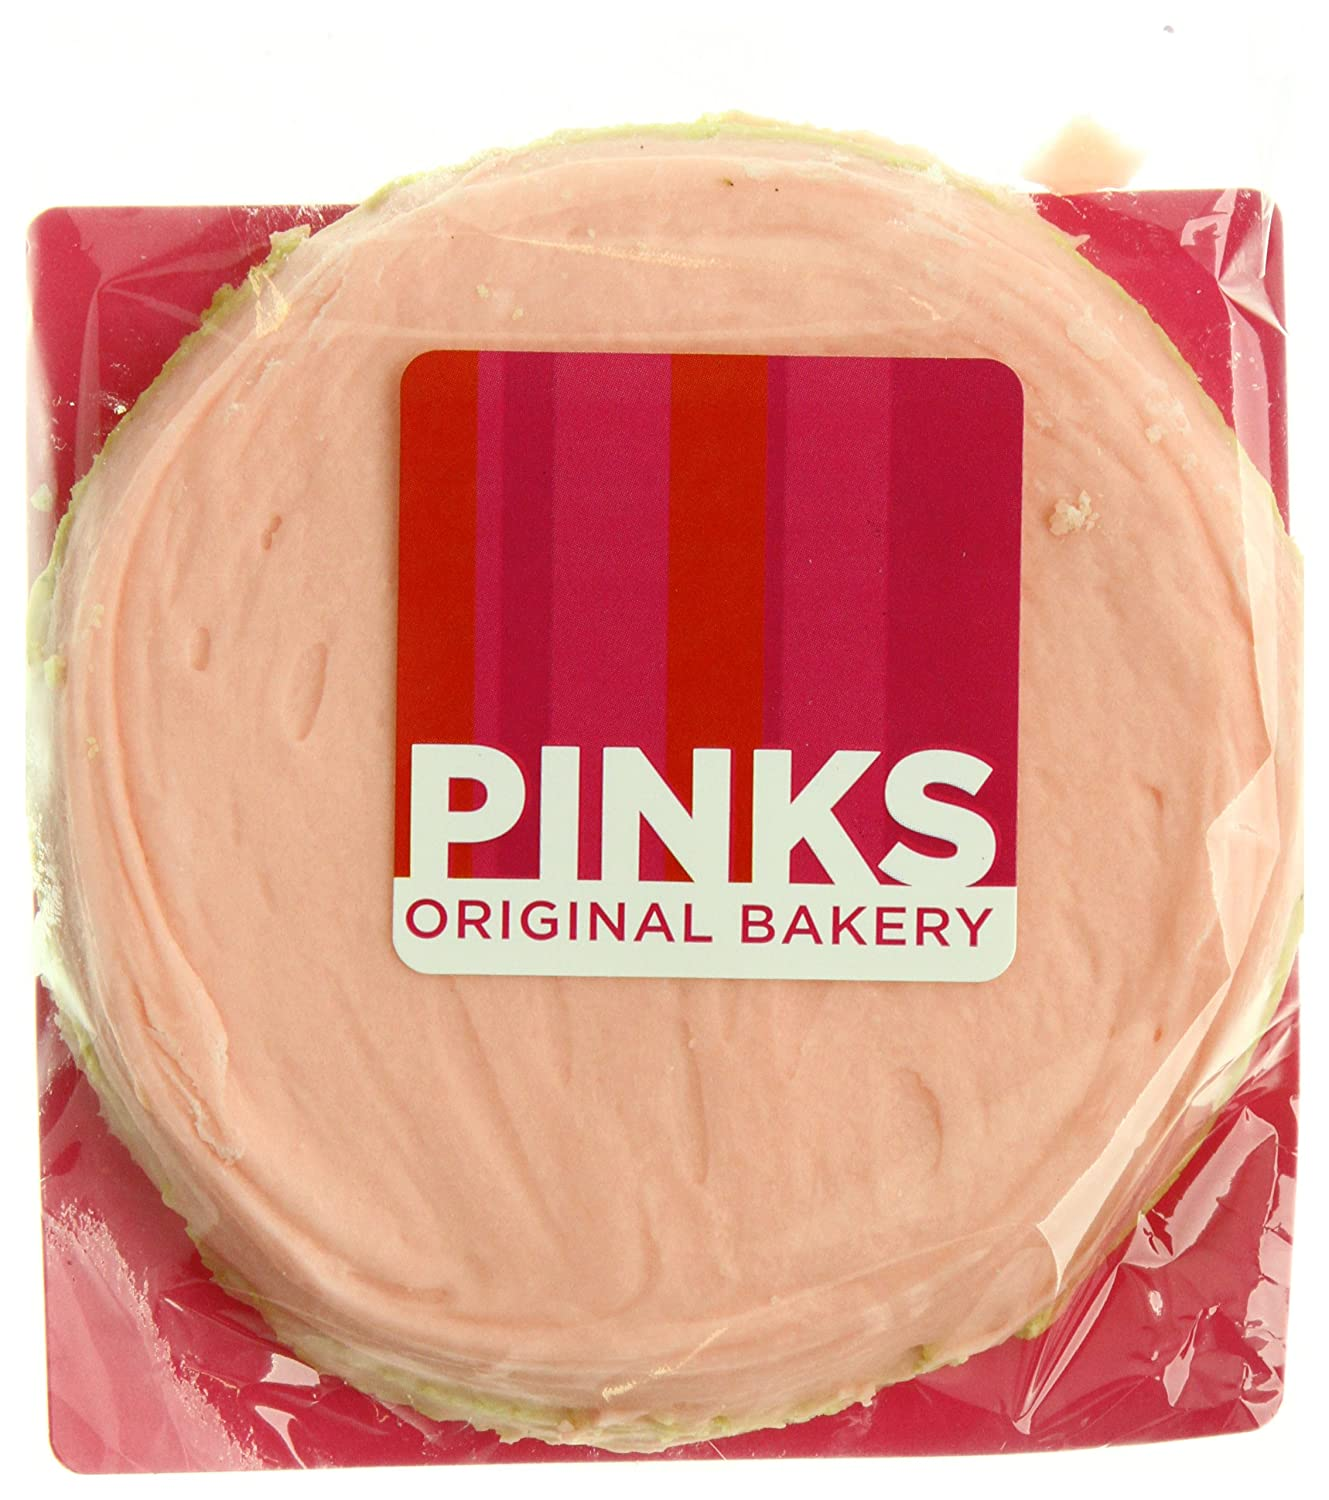 Mostly Muffins, Uncle Seth Cookies - The Original Pink!, 1 cookie